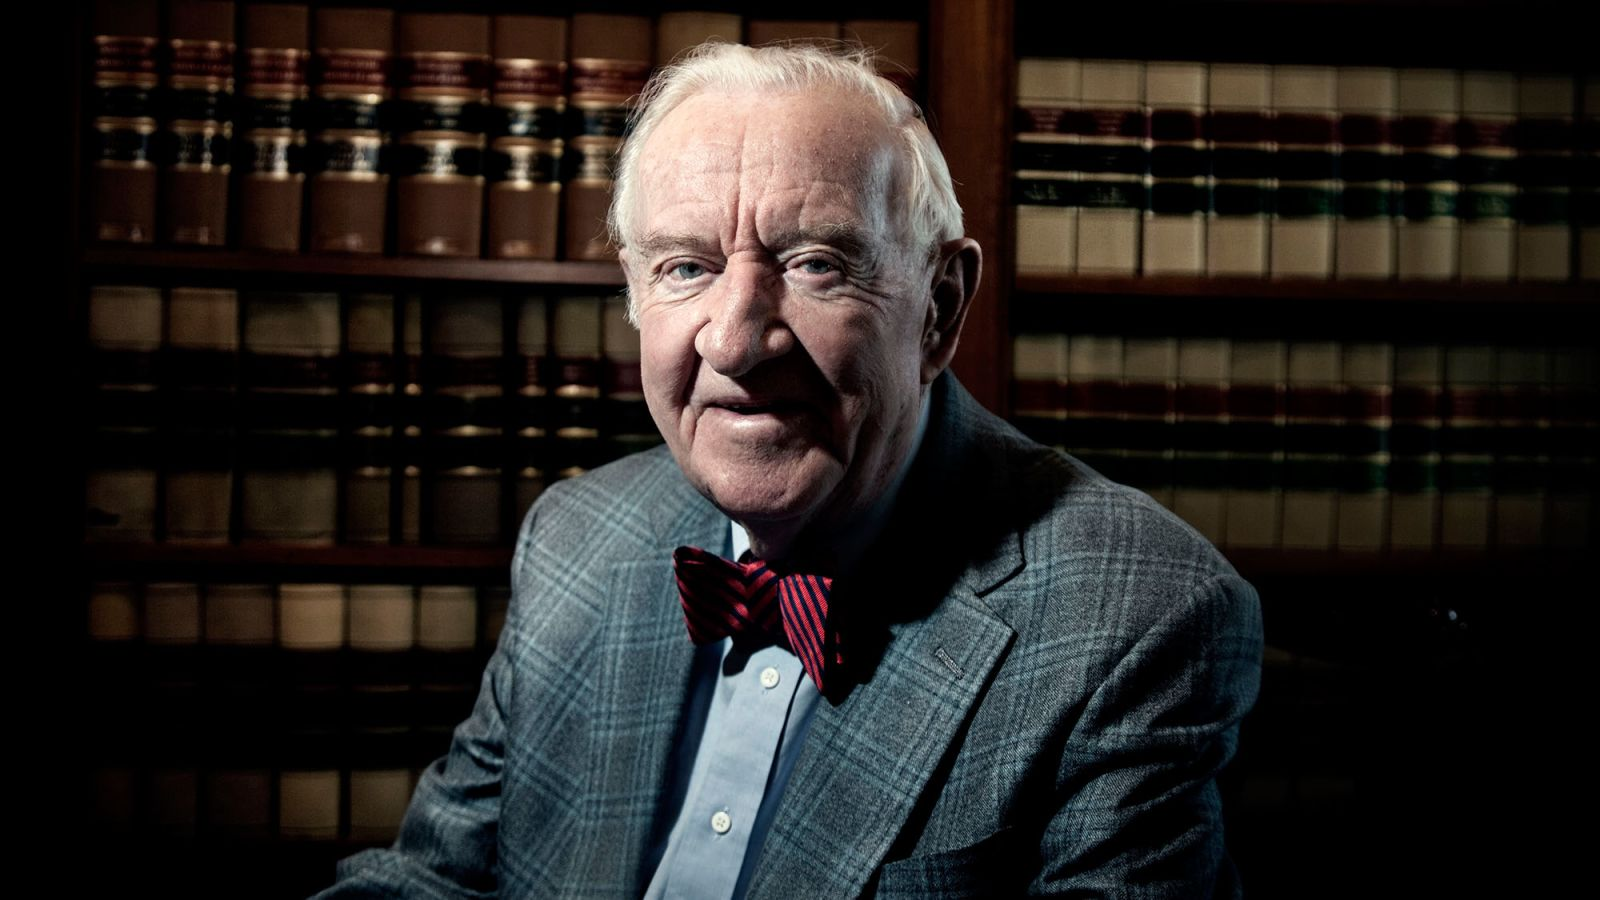 Justice John Paul Stevens' life in pictures